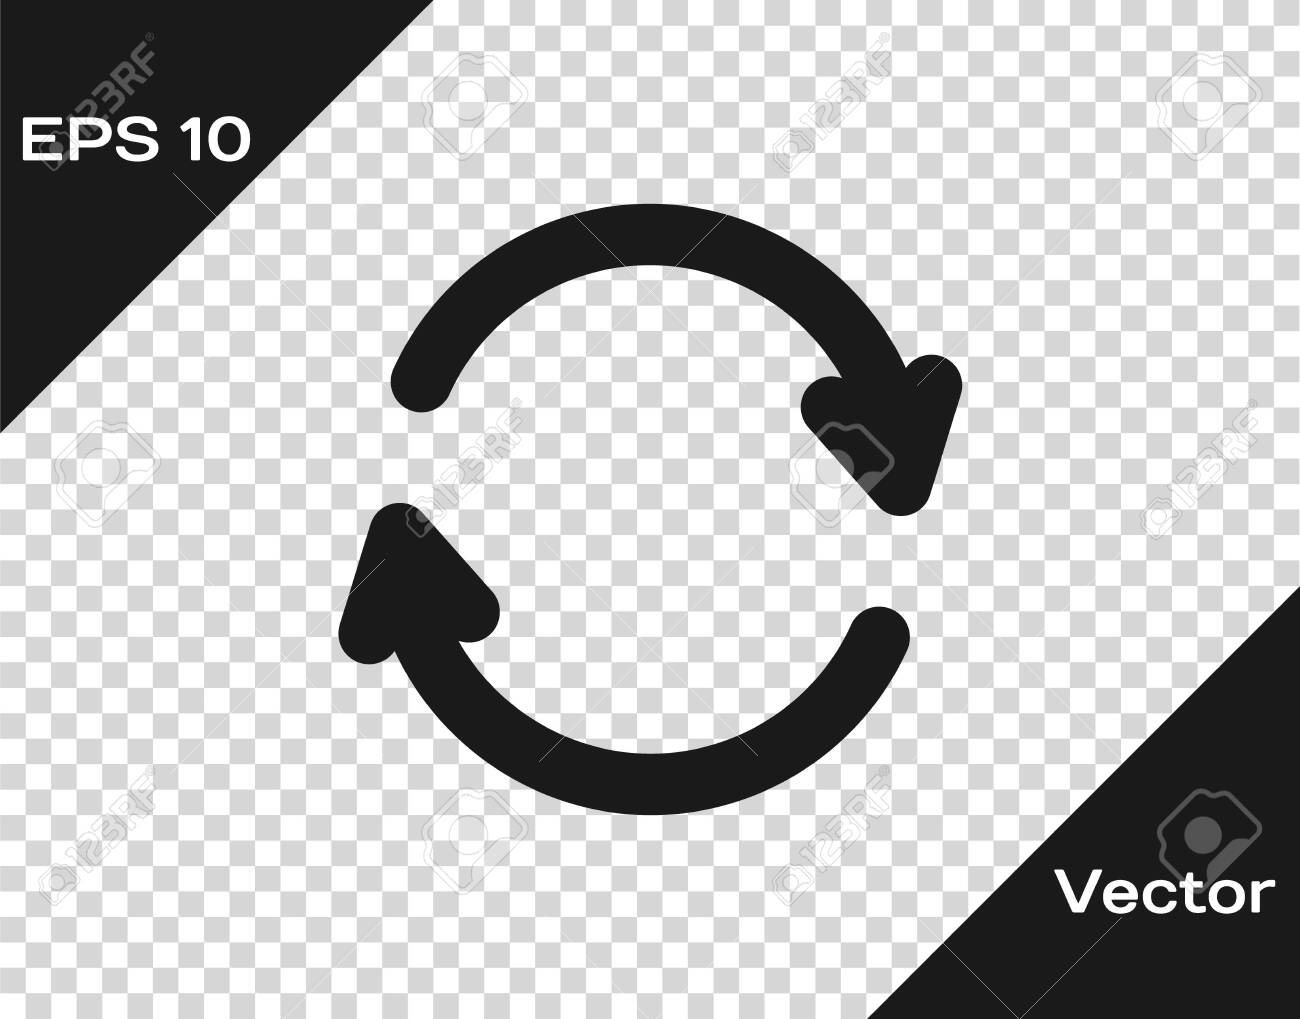 Black Refresh icon isolated on transparent background. Reload symbol. Rotation arrows in a circle sign. Vector Illustration - 146476319